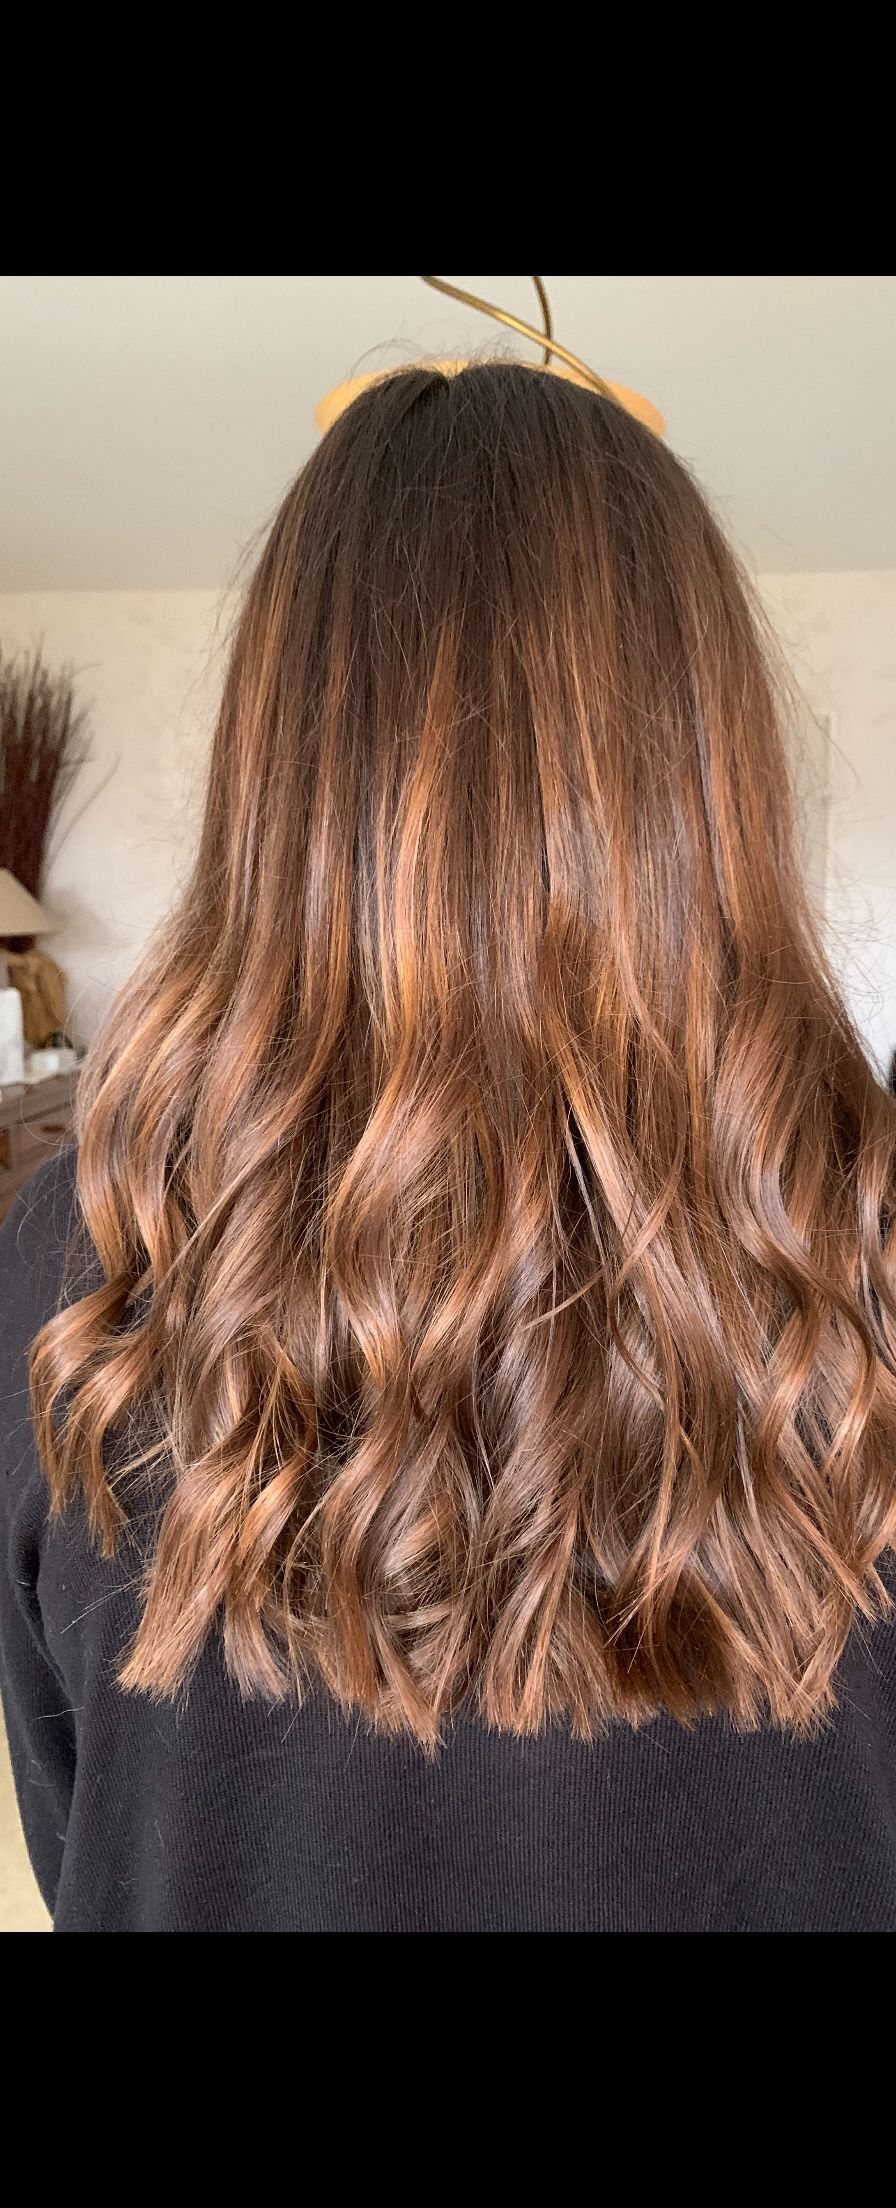 Ombre Hair Balayage Balayage Cheveux Bruns Cheveux Decolores Coiffure